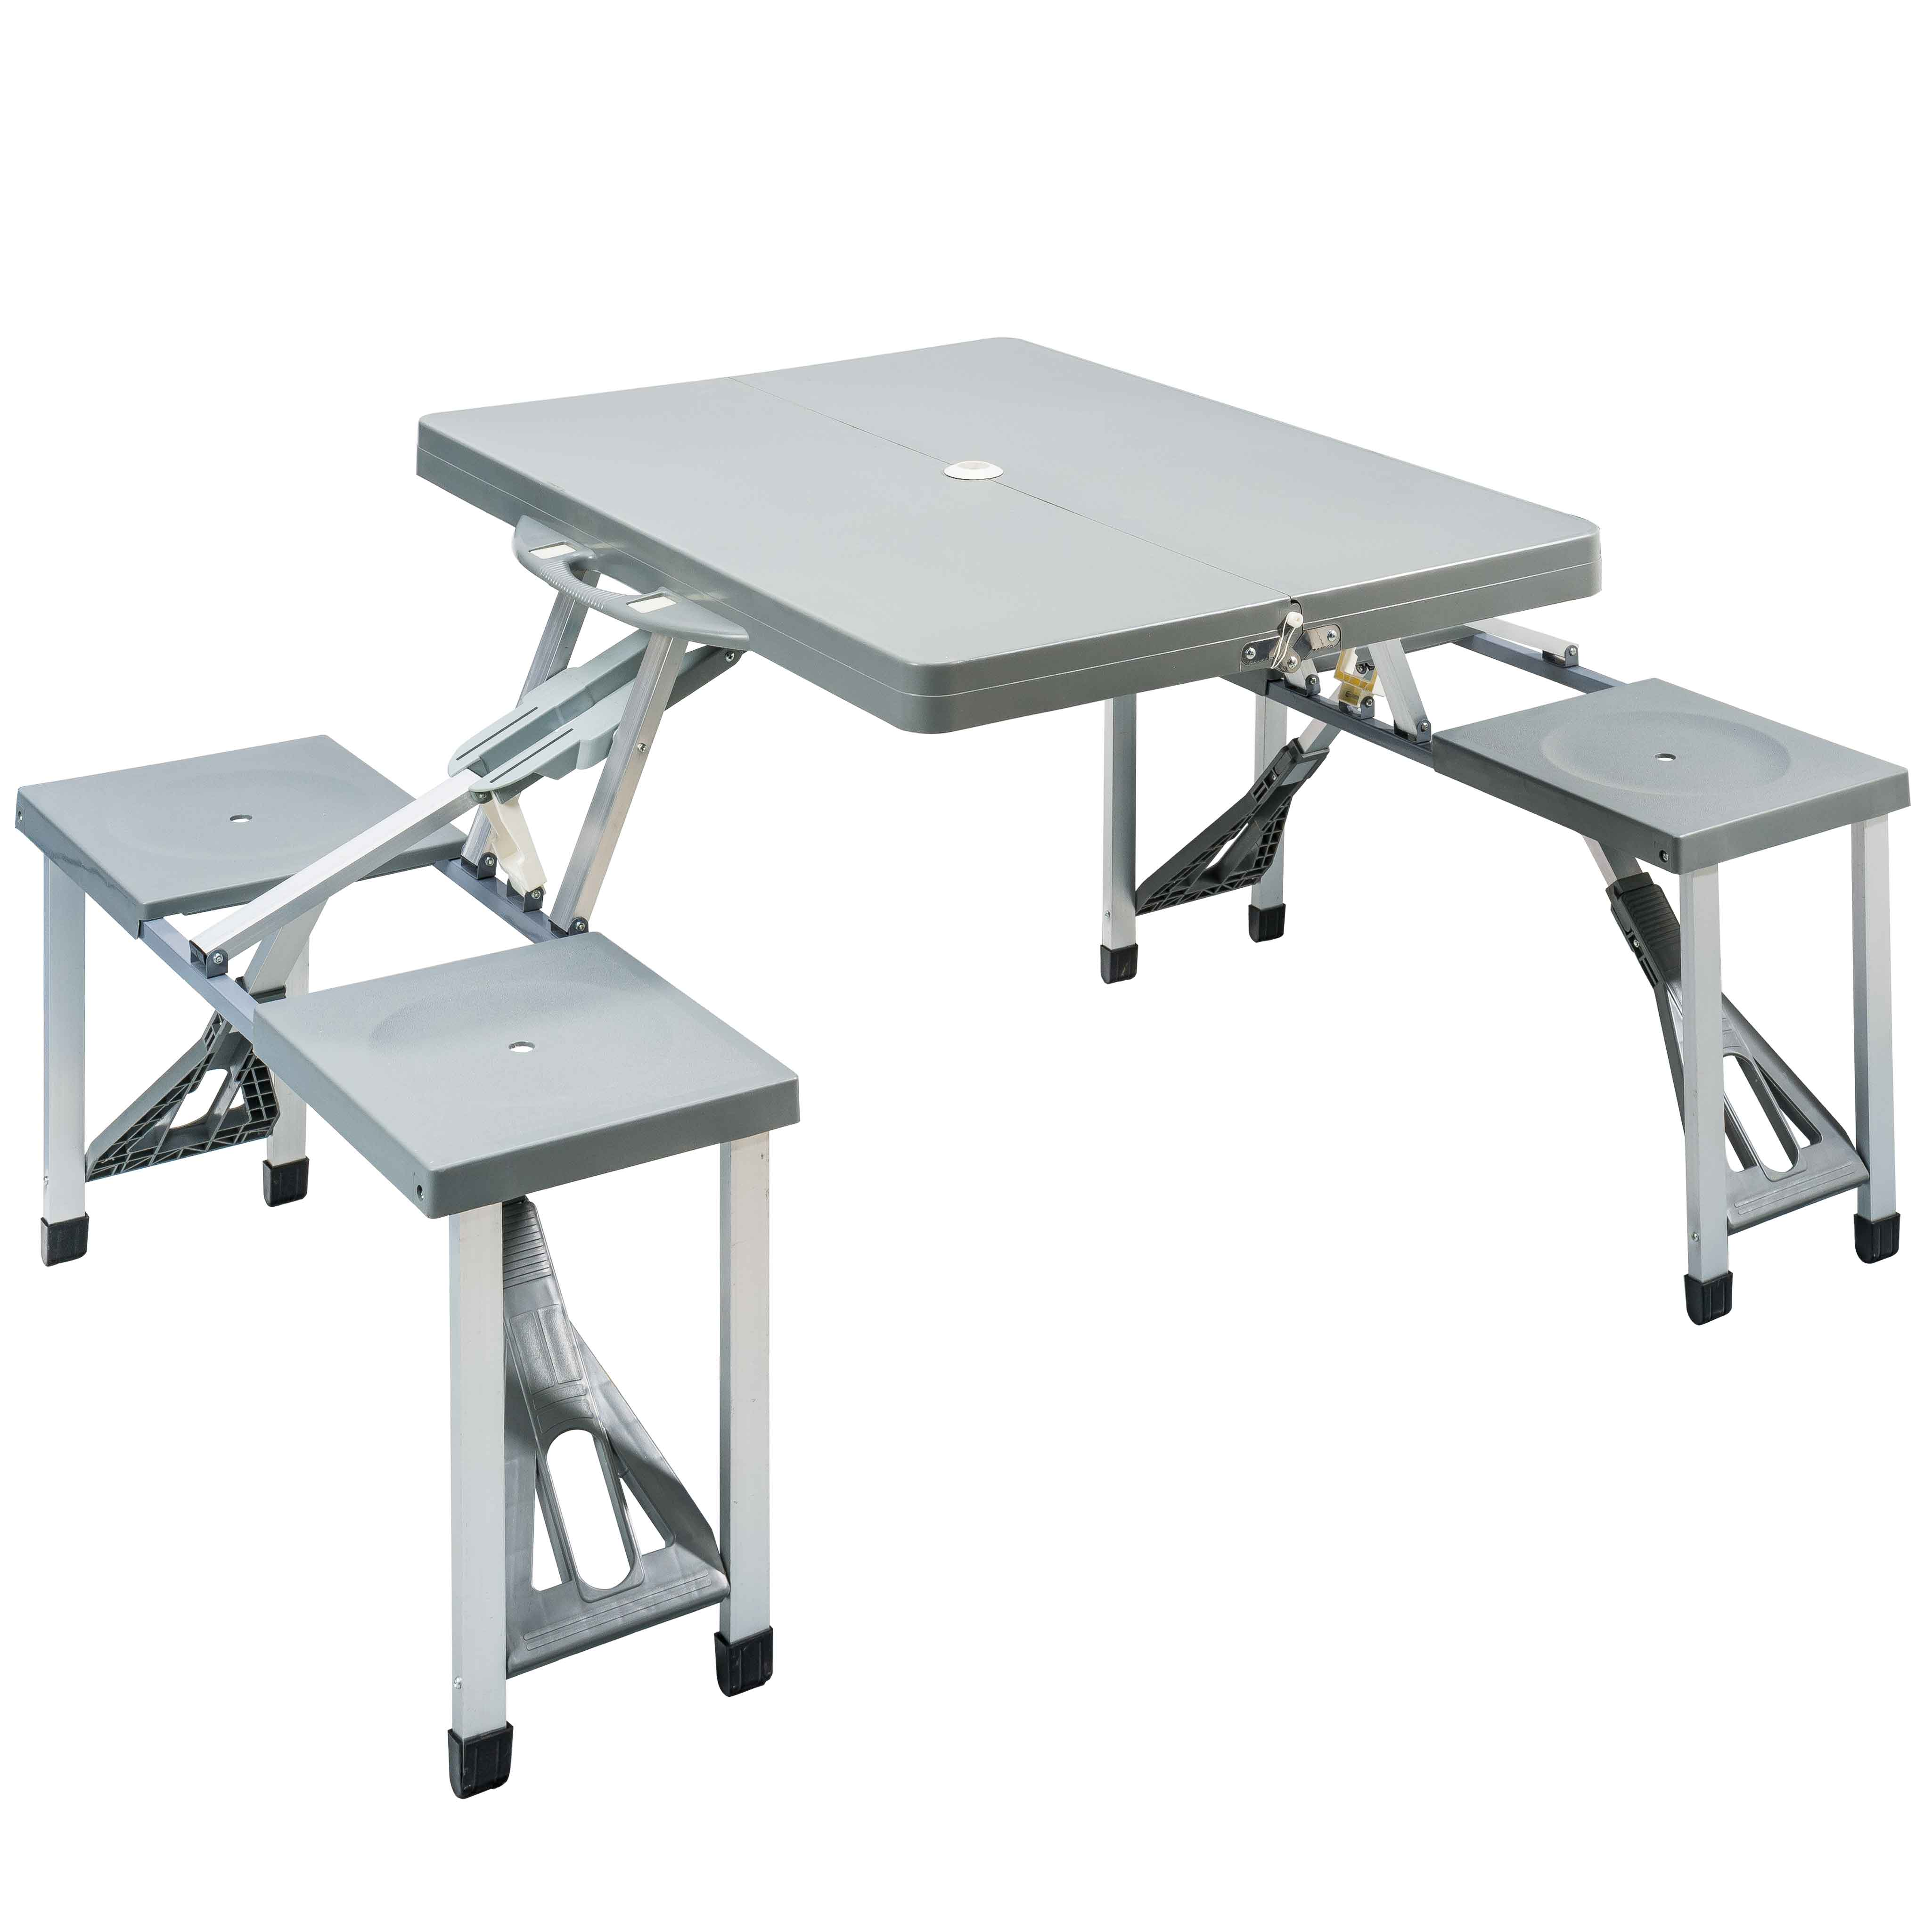 Table Aluminium Pliante Table Pliante Pieds En Aluminium 4 Places